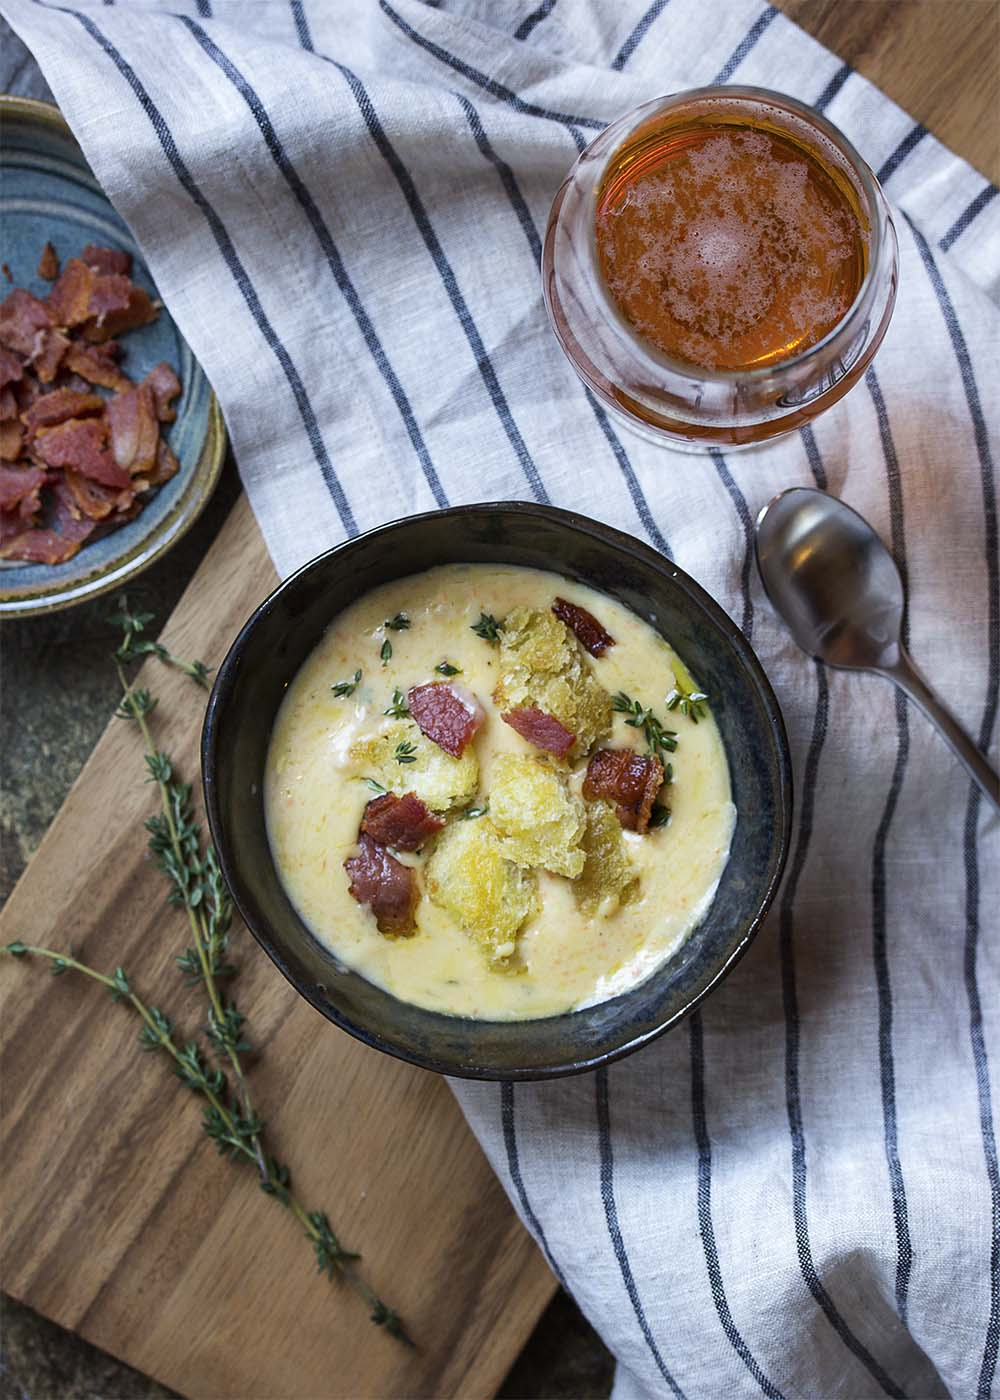 Top view of a bowl of creamy bacon cheddar soup topped with croutons and bacon crumbles. A glass of beer, a cloth napkin, and a spoon on the table.